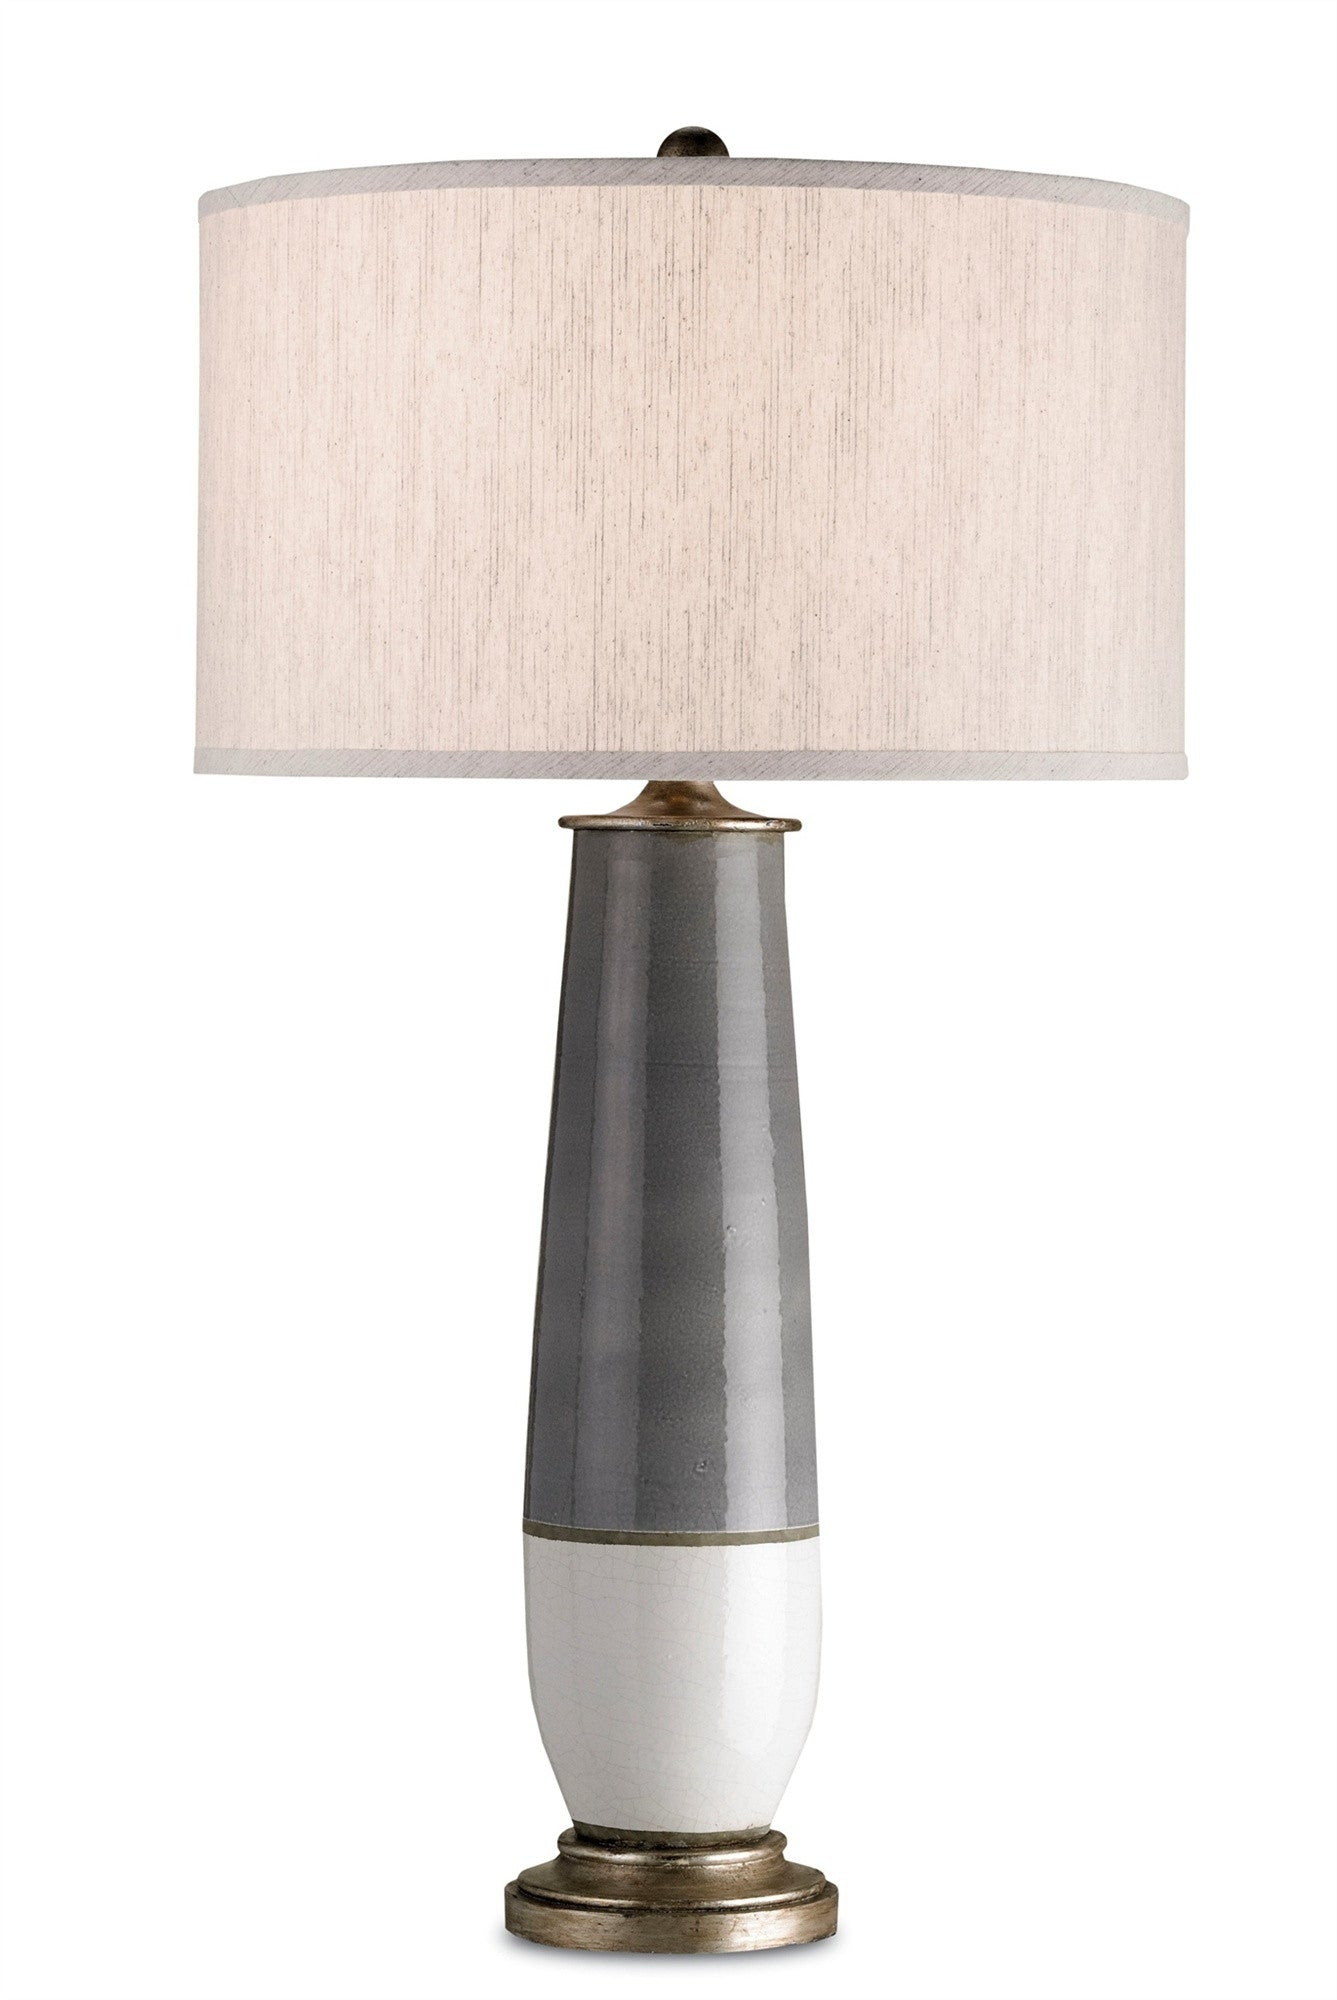 Urbino table lamp design by currey company burke decor for Lamp light design company